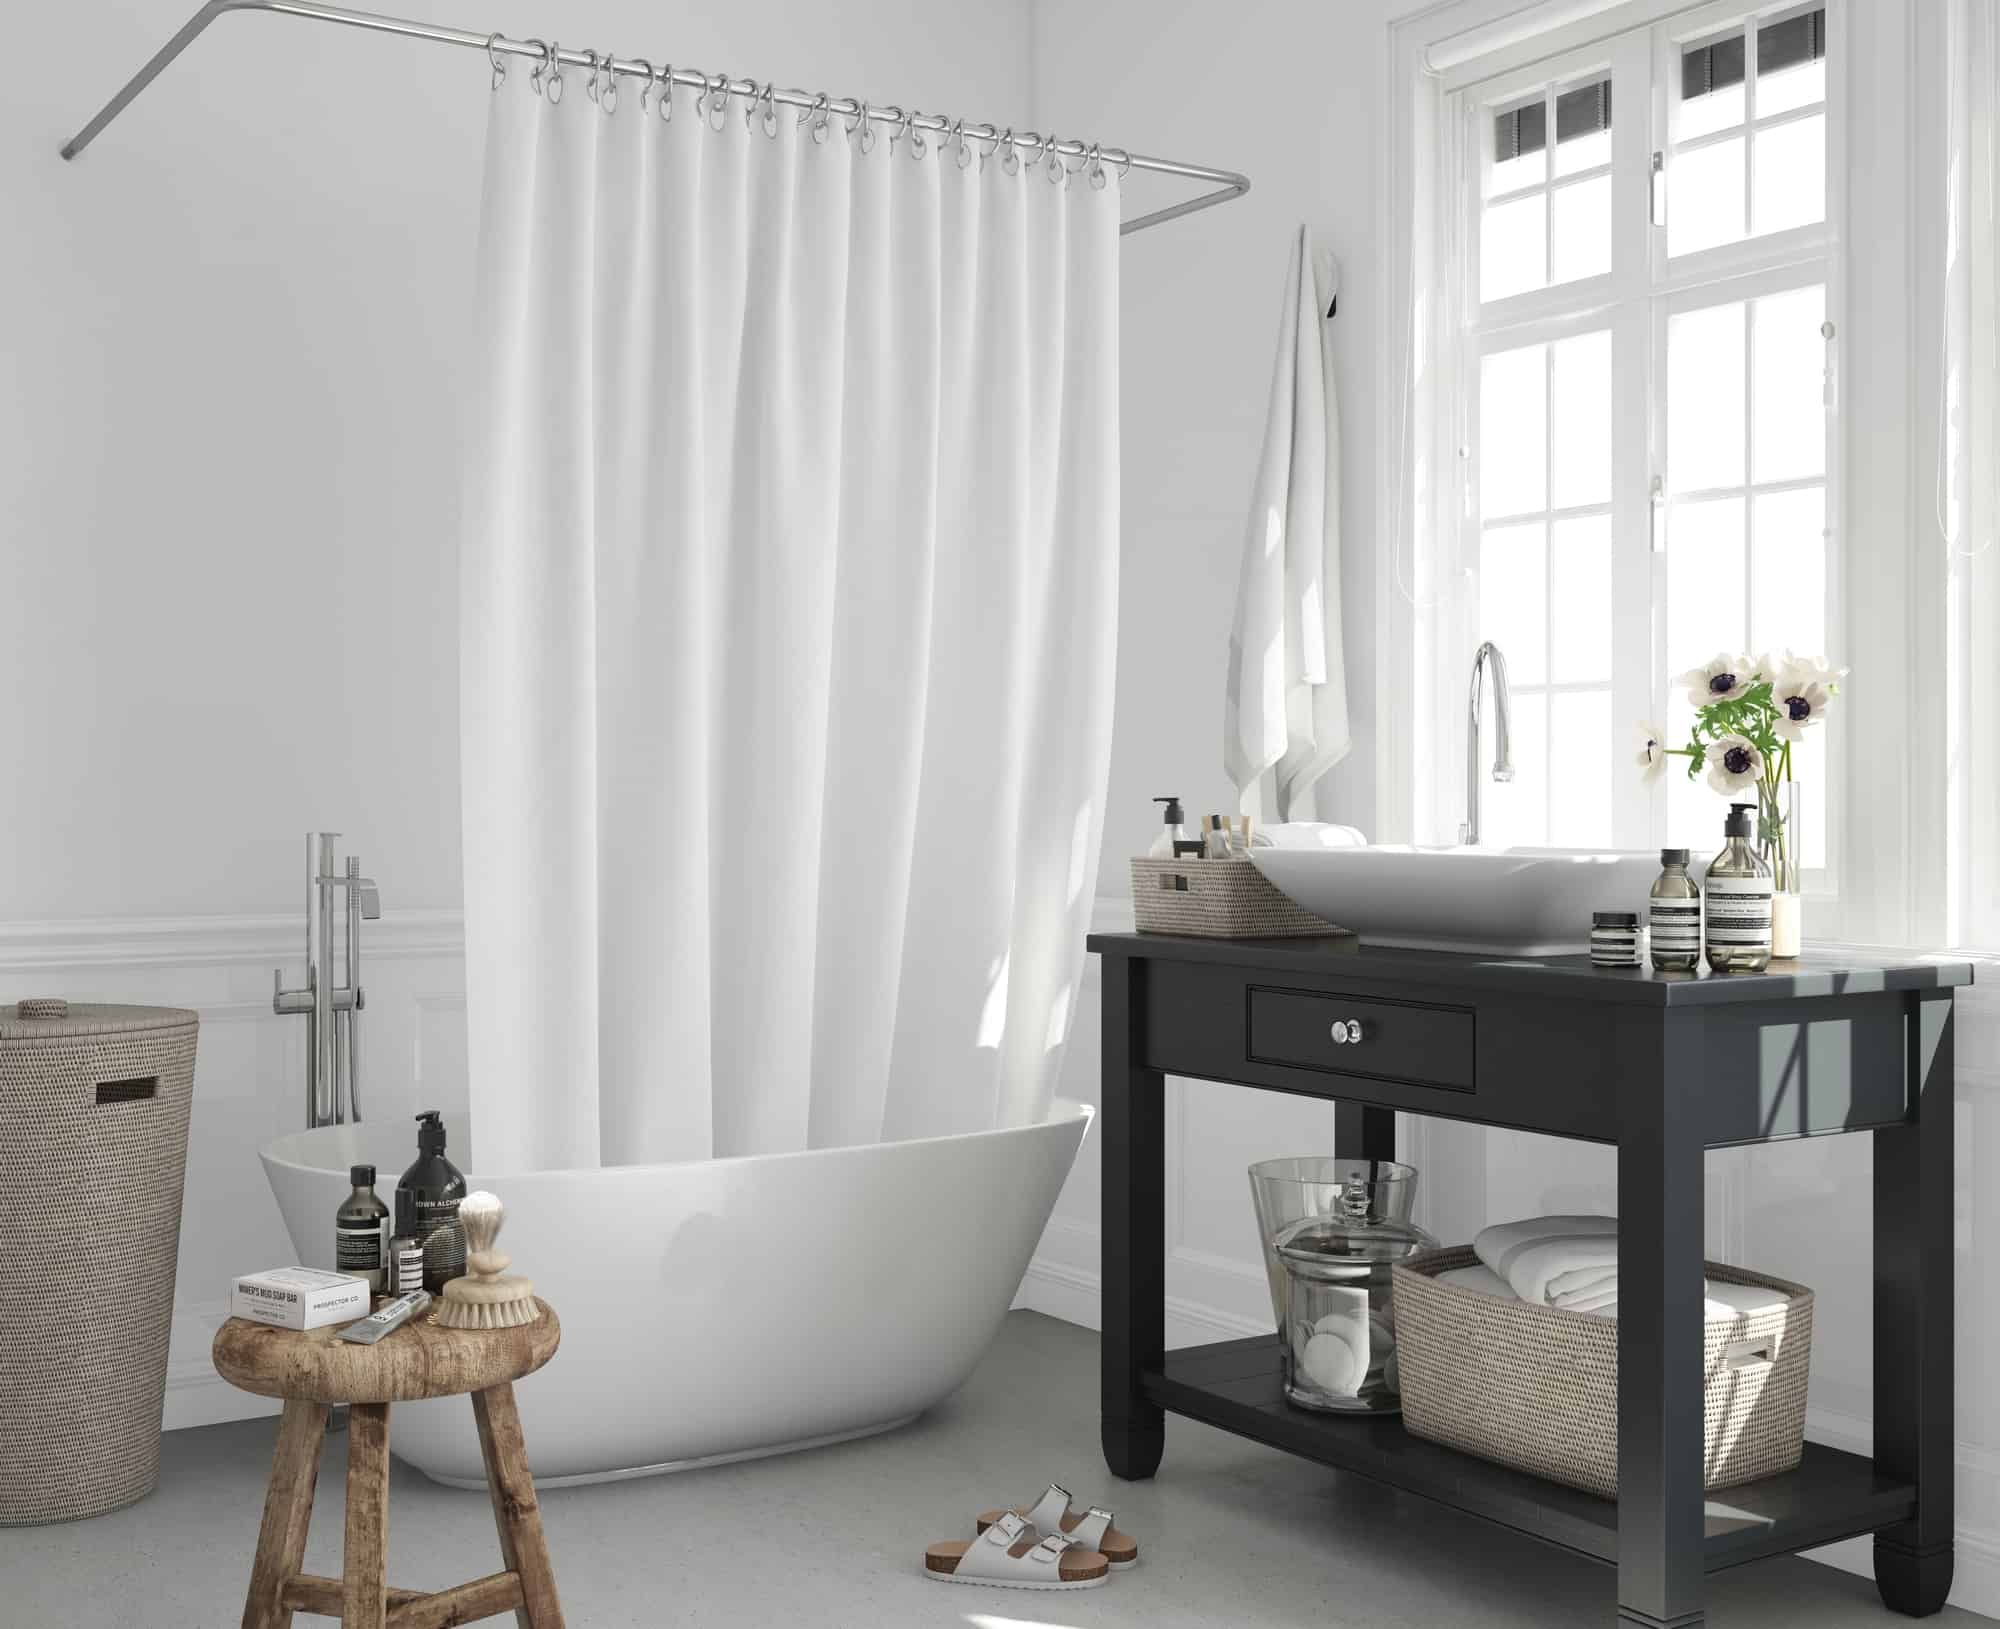 Zero Waste Shower Curtain Options for a Healthier Home